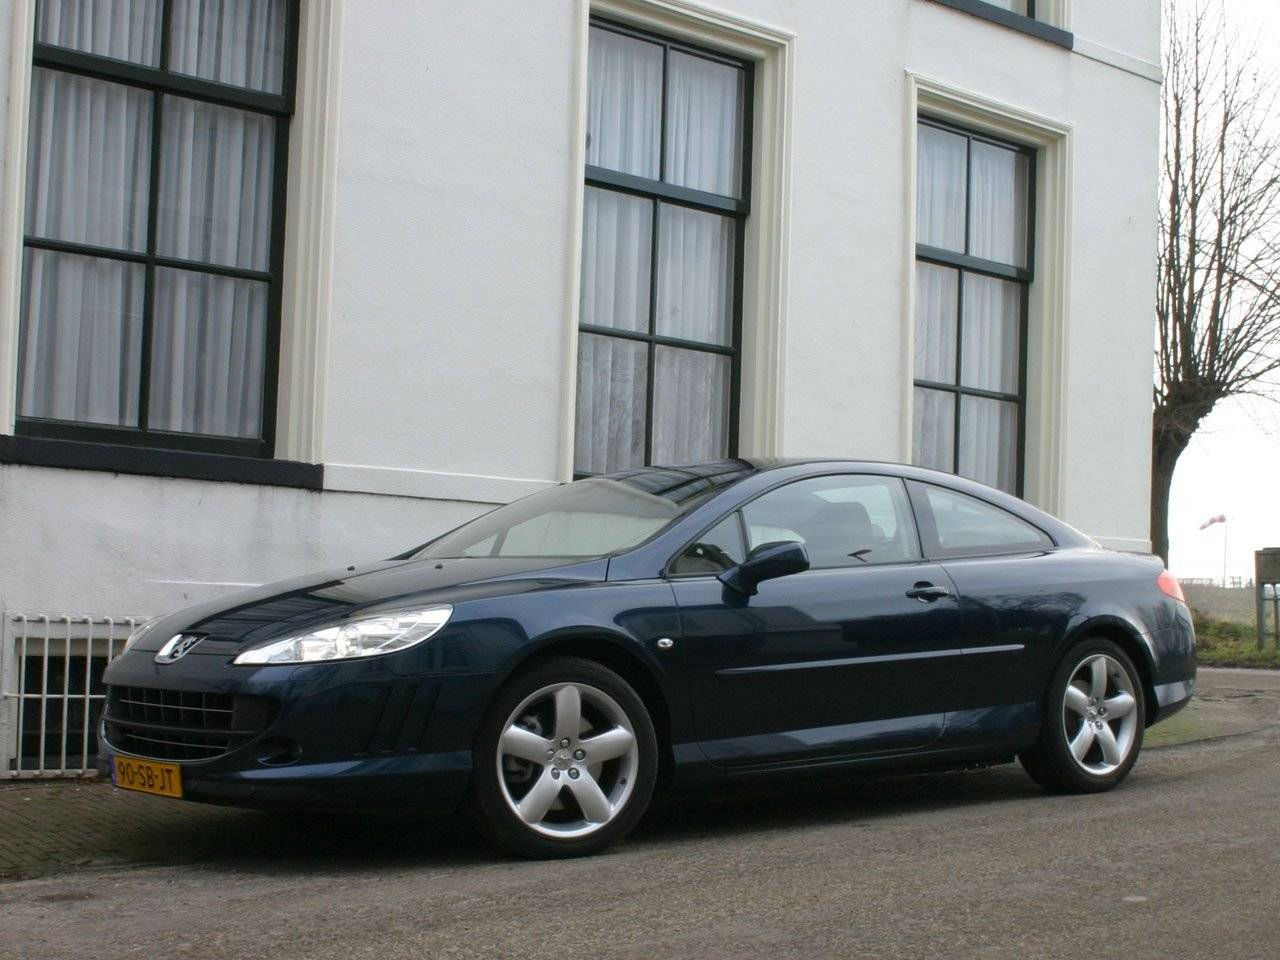 test gt peugeot 407 coup autotests. Black Bedroom Furniture Sets. Home Design Ideas